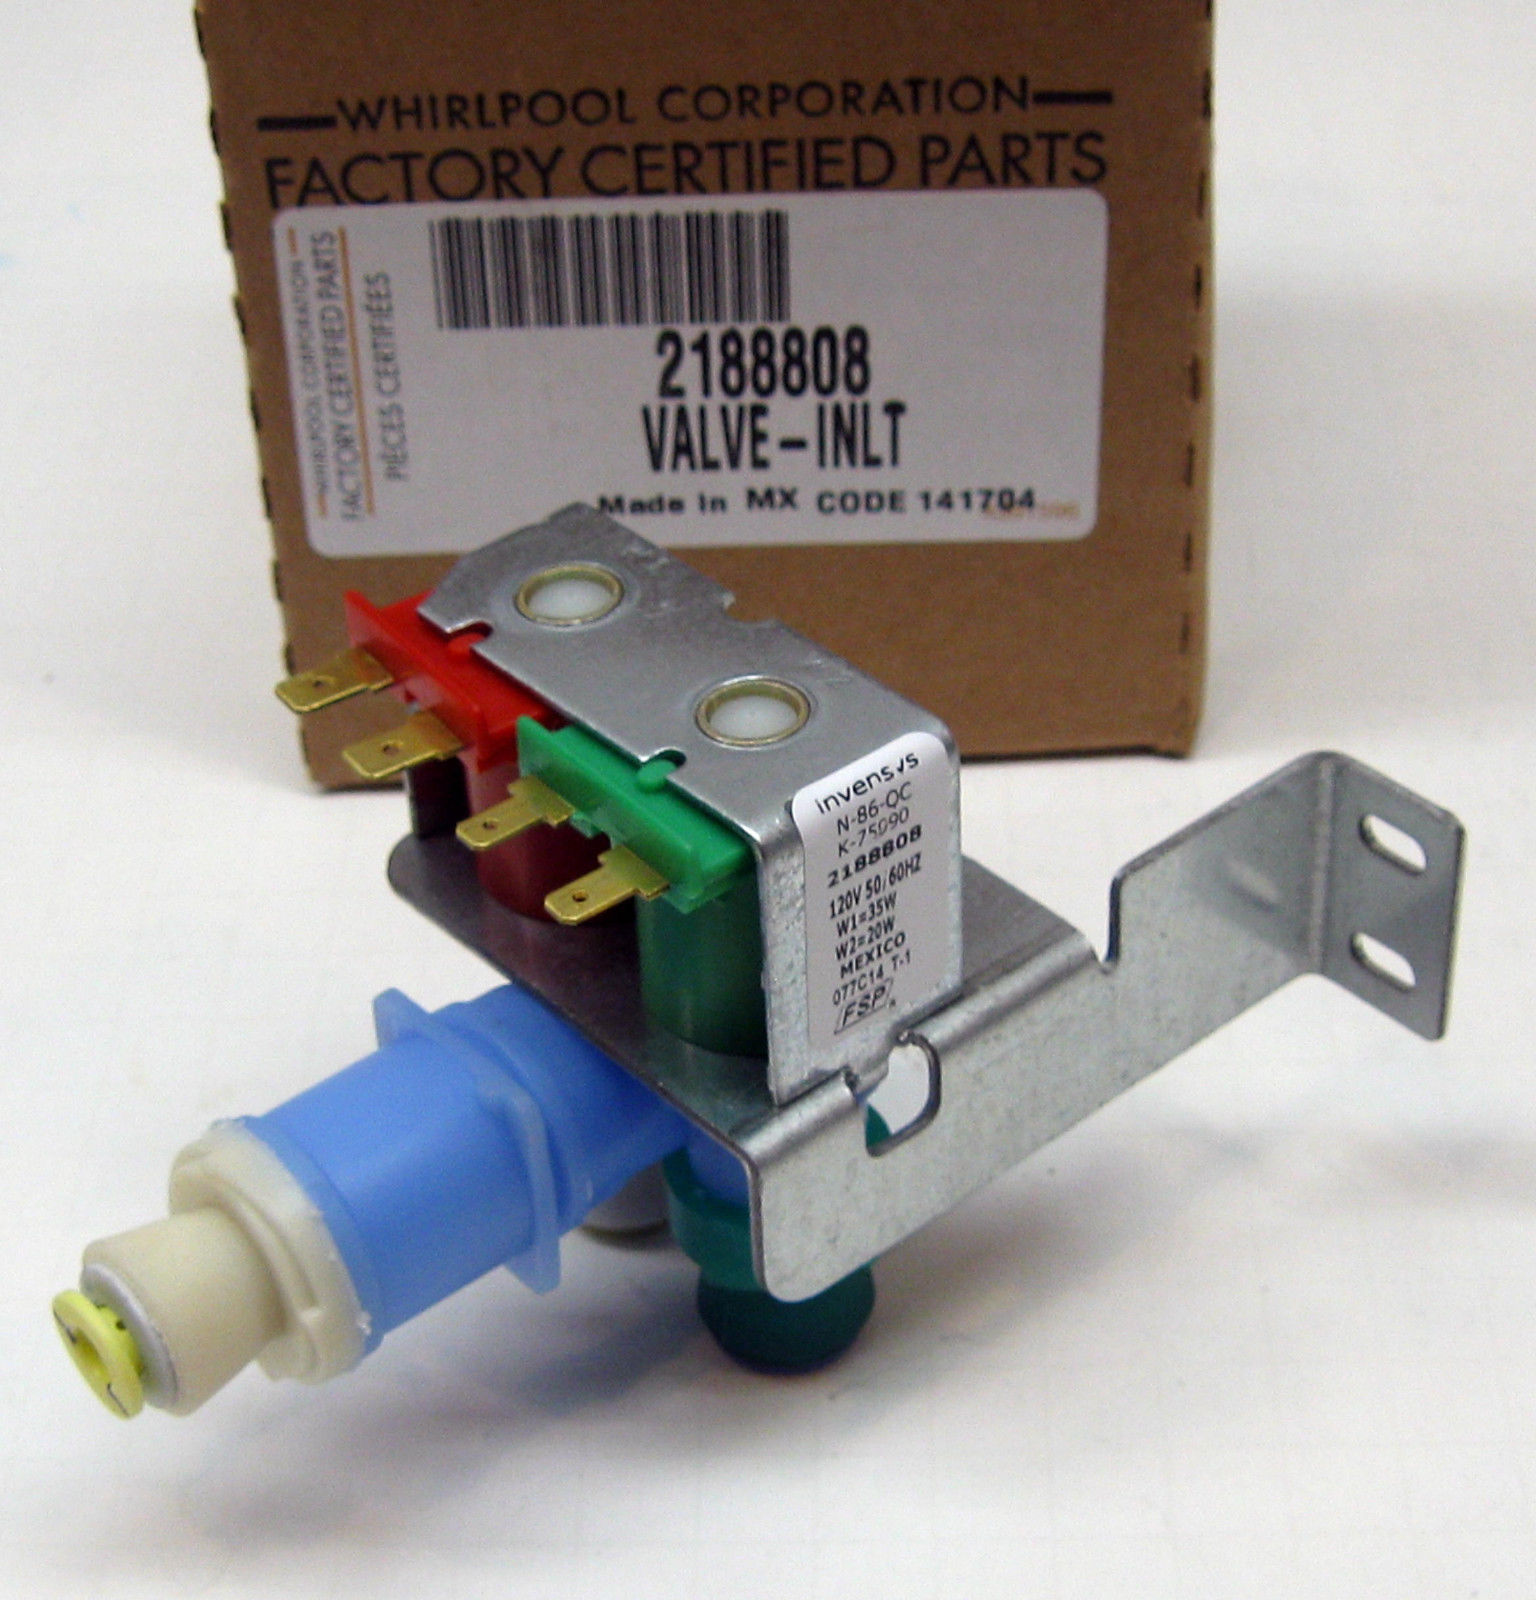 Whirlpool kitchenaid refrigerator water valve wp2188808 ps968735 ap3799250 ebay - Kitchenaid dishwasher fill valve ...